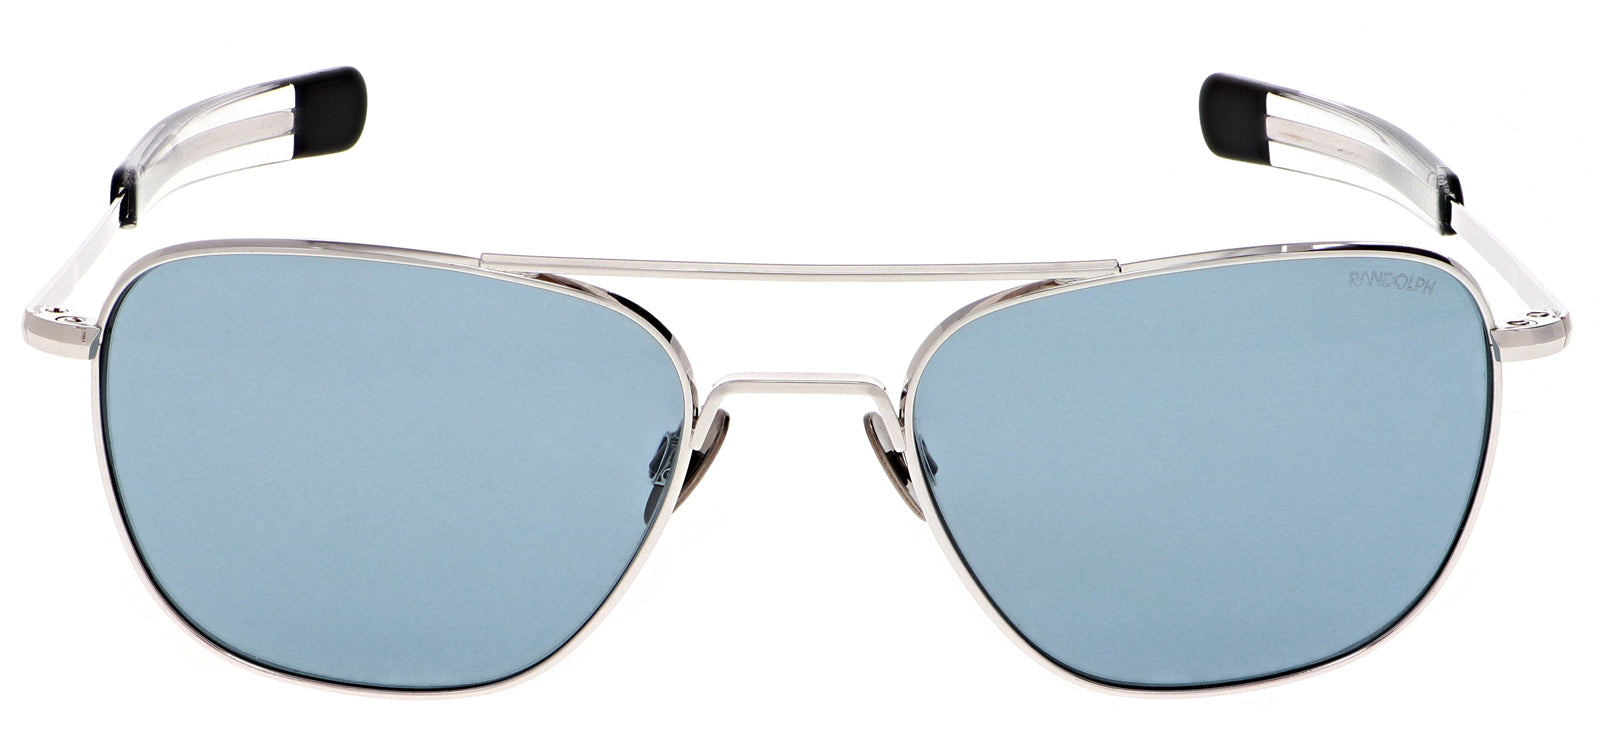 The Aviator in White Gold and Blue Hyrdo Lens. | Randolph Engineering